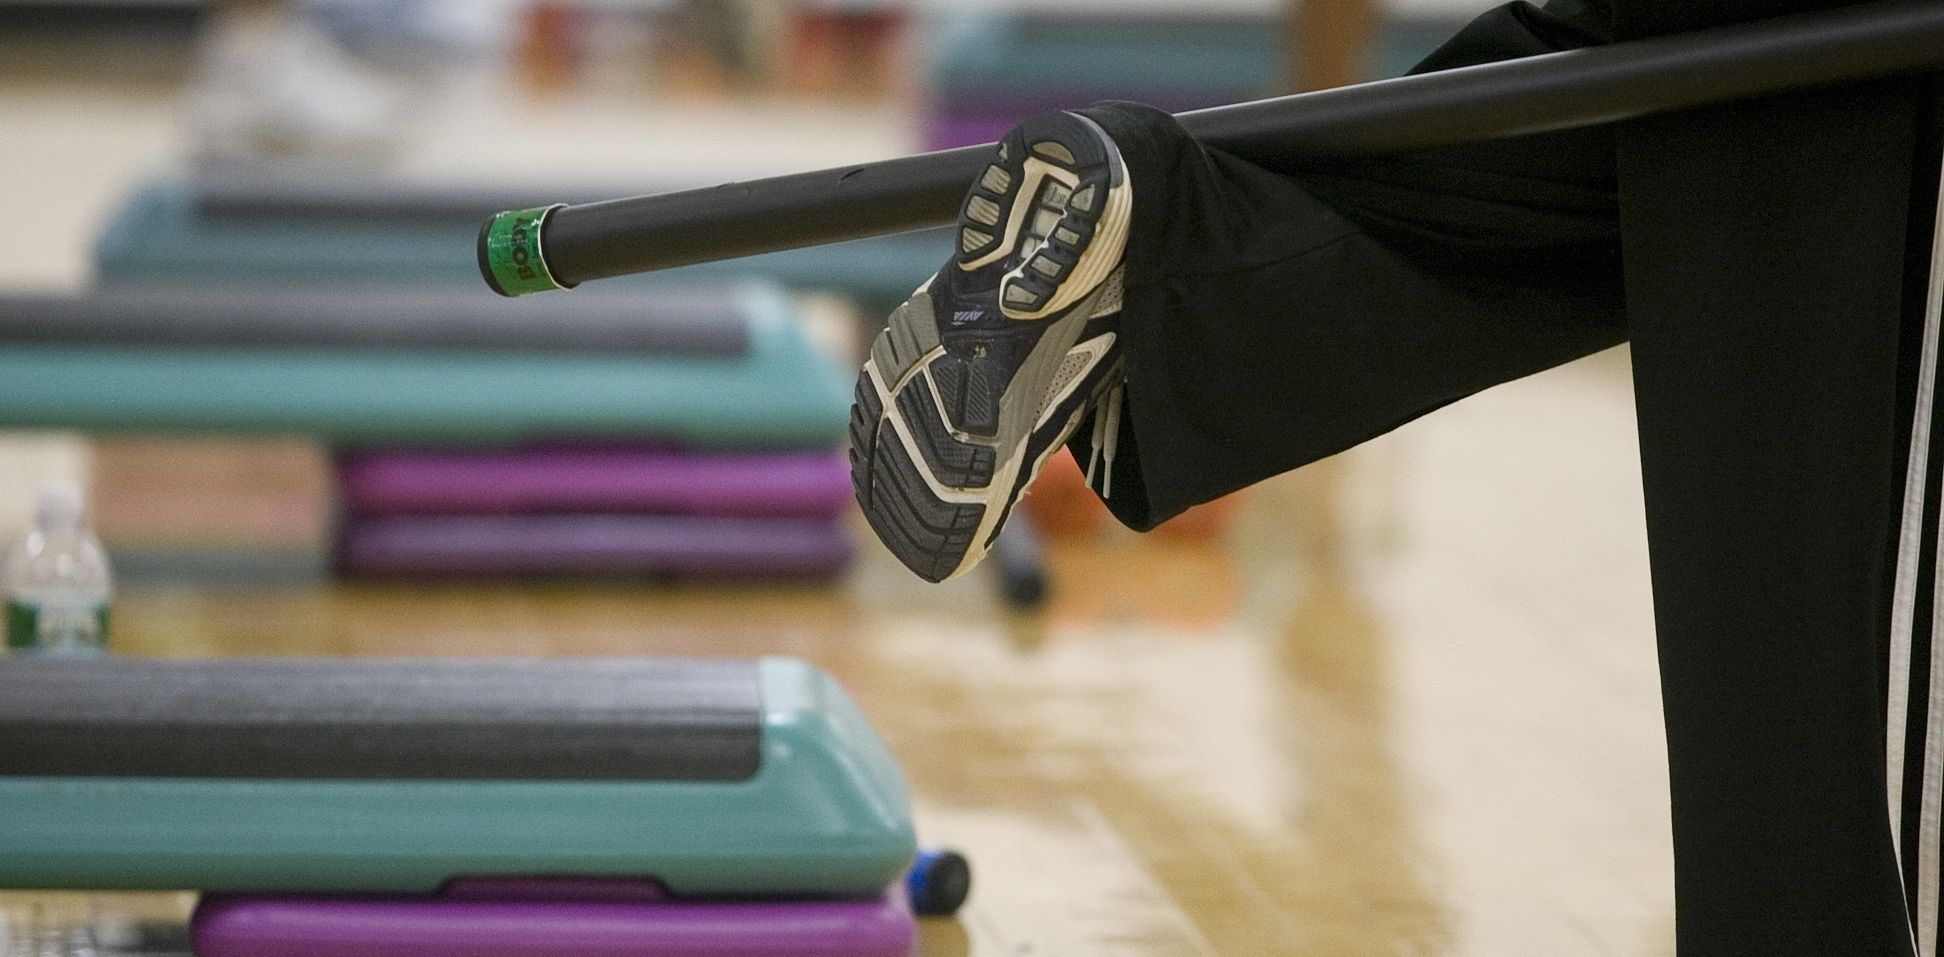 Group Fitness equipment during a session